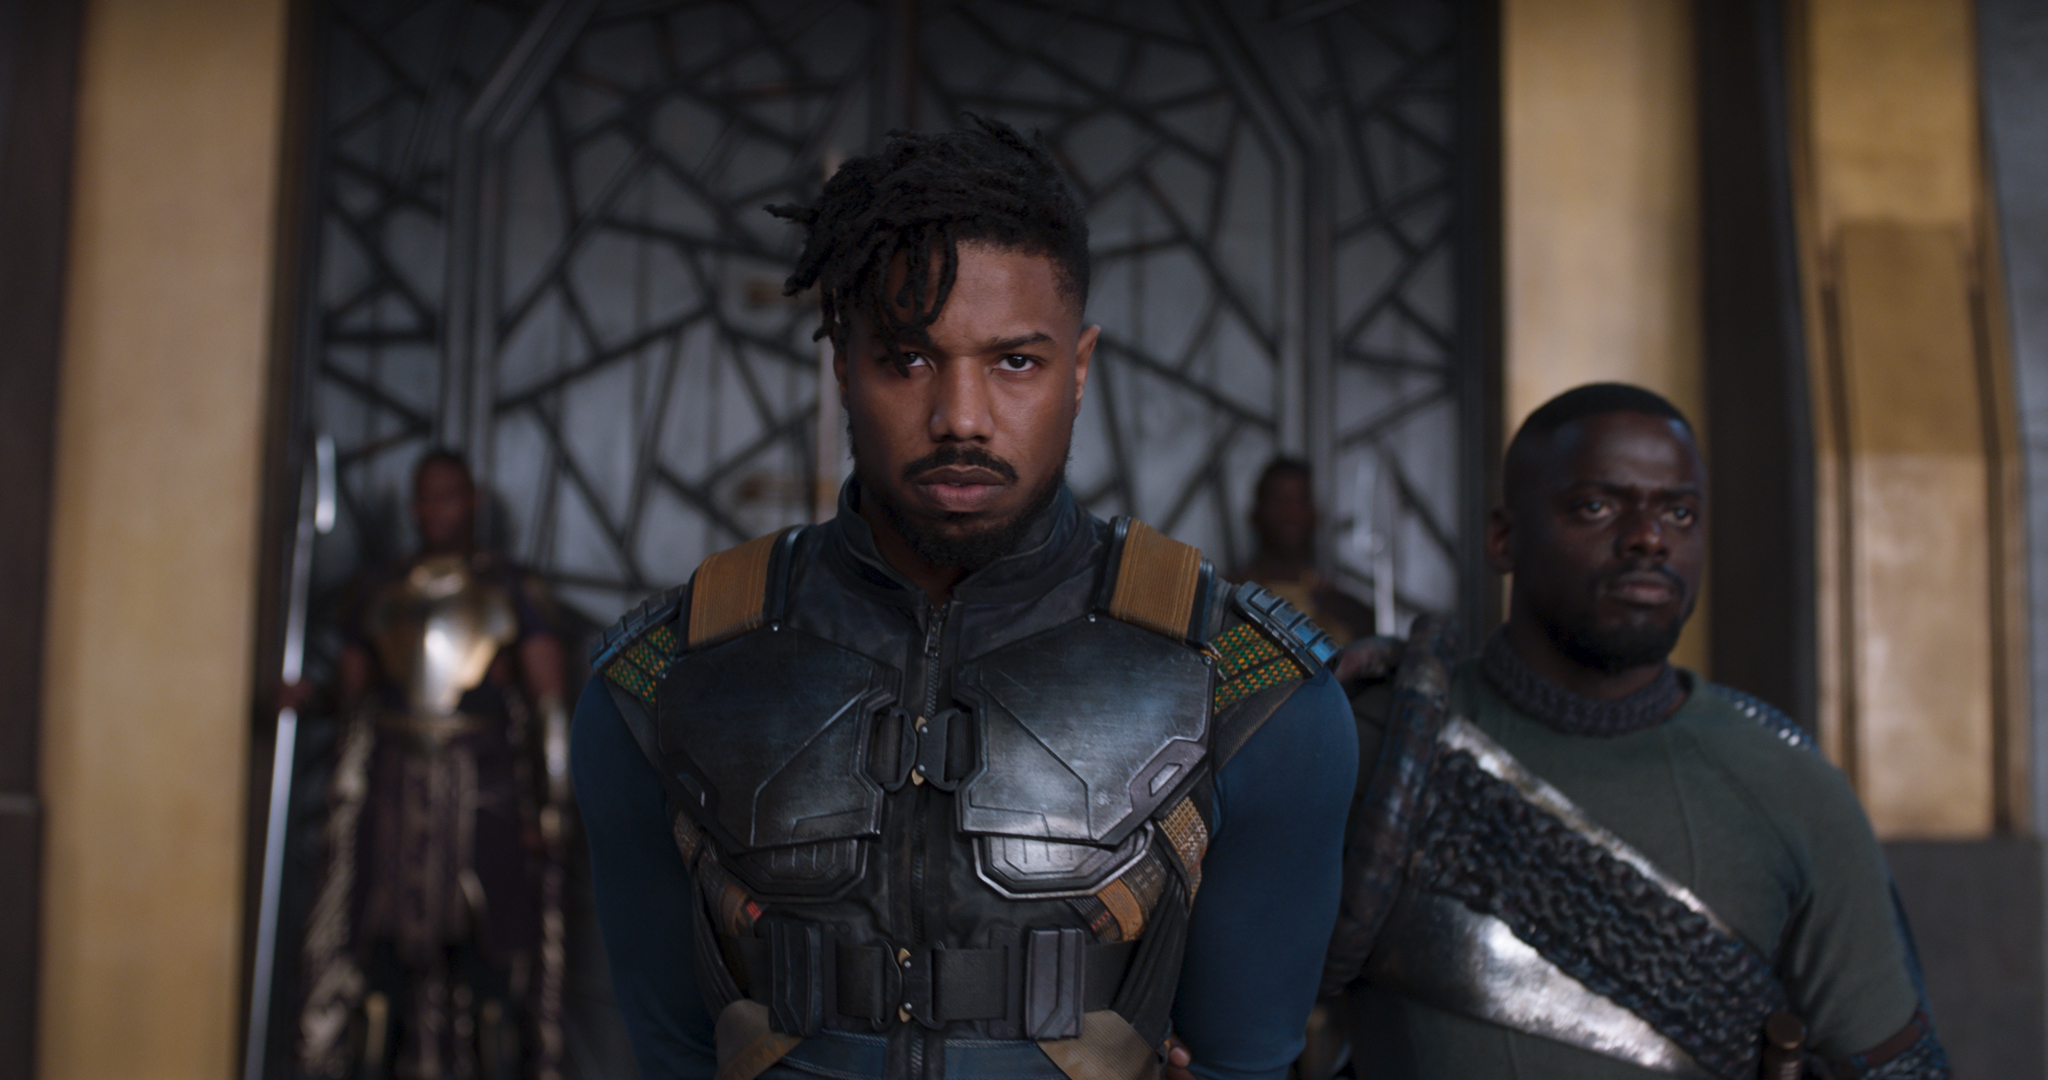 A Closer Look At Black Panther's Powerful Costume Design